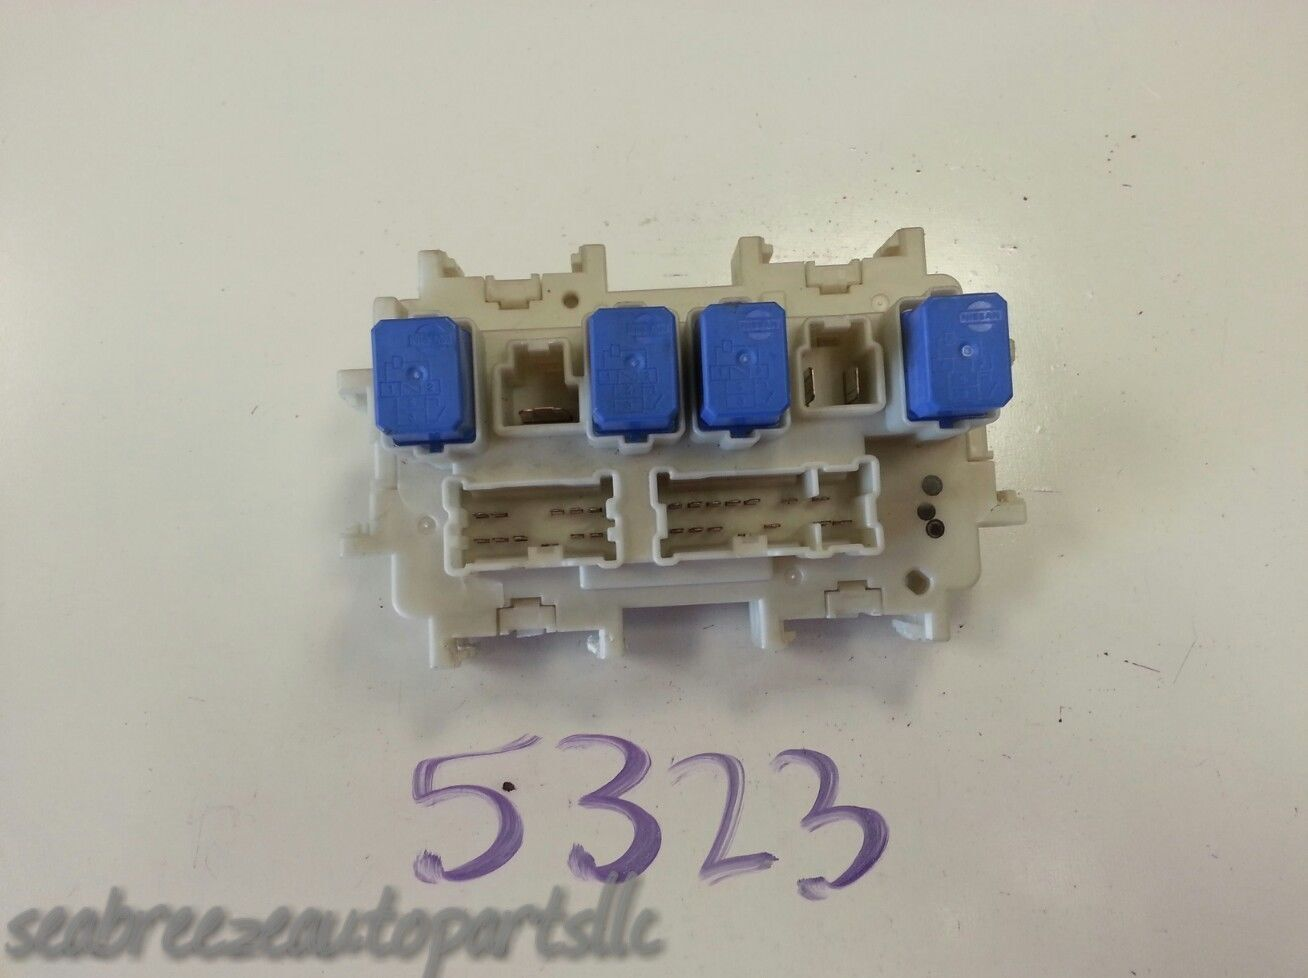 Nissan Infiniti Power Control Module Unit Relay Fuse Box Fuses Fusebox 1 of  4Only 1 available See More